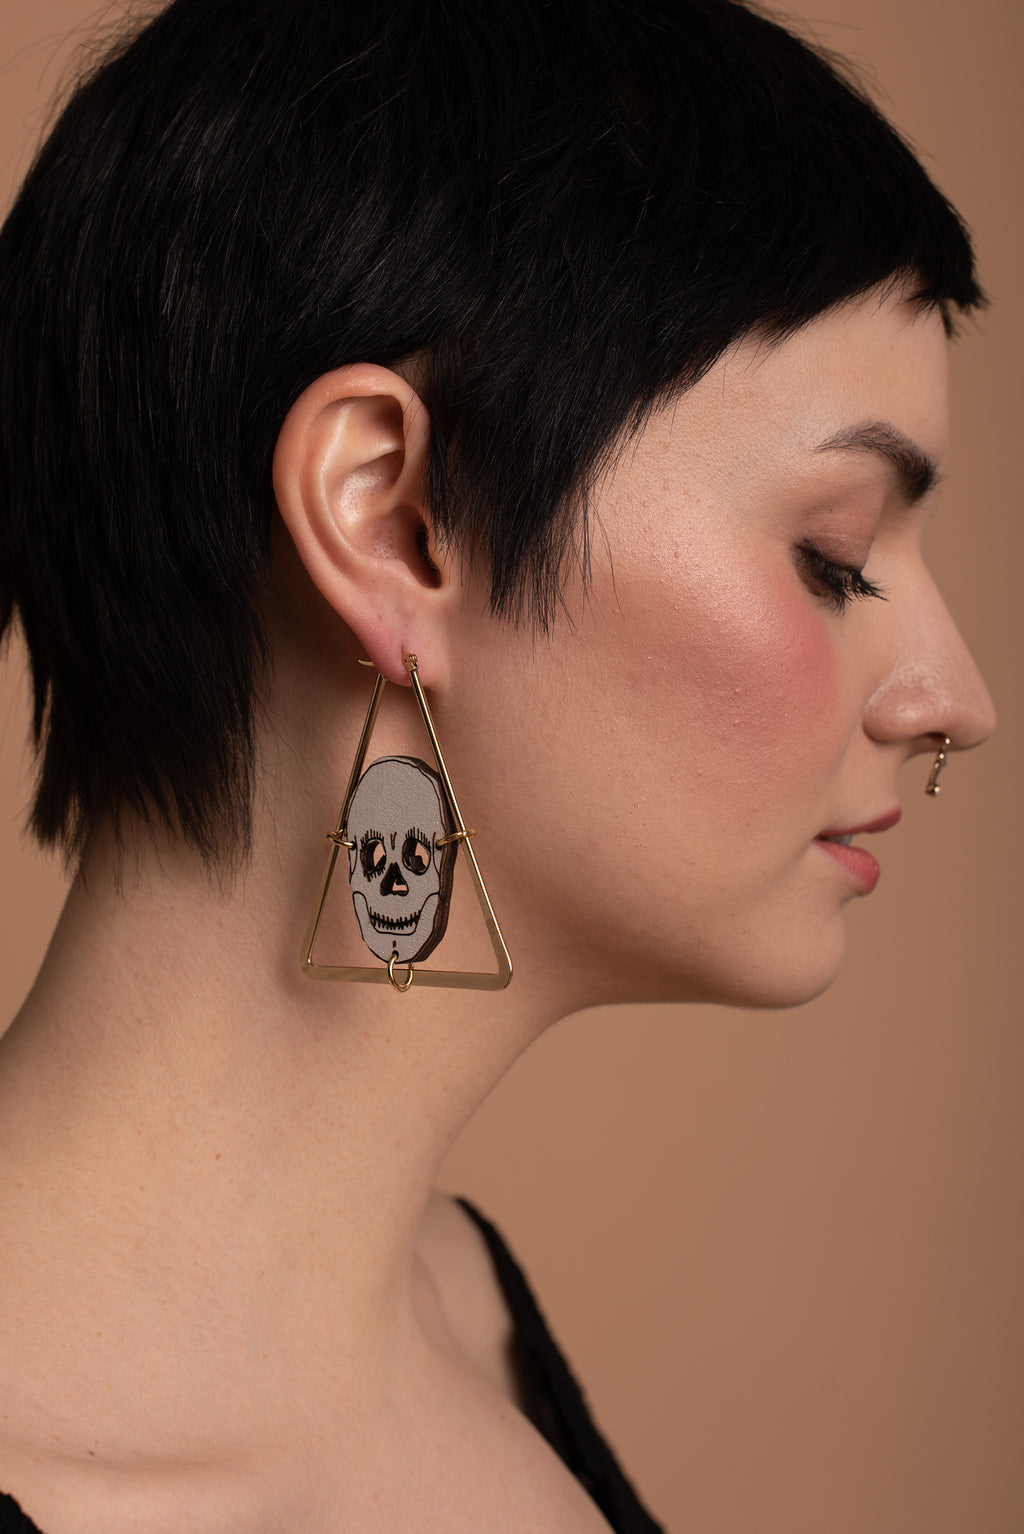 Skull Triangle Earrings, Golden color triangle, Wooden skull